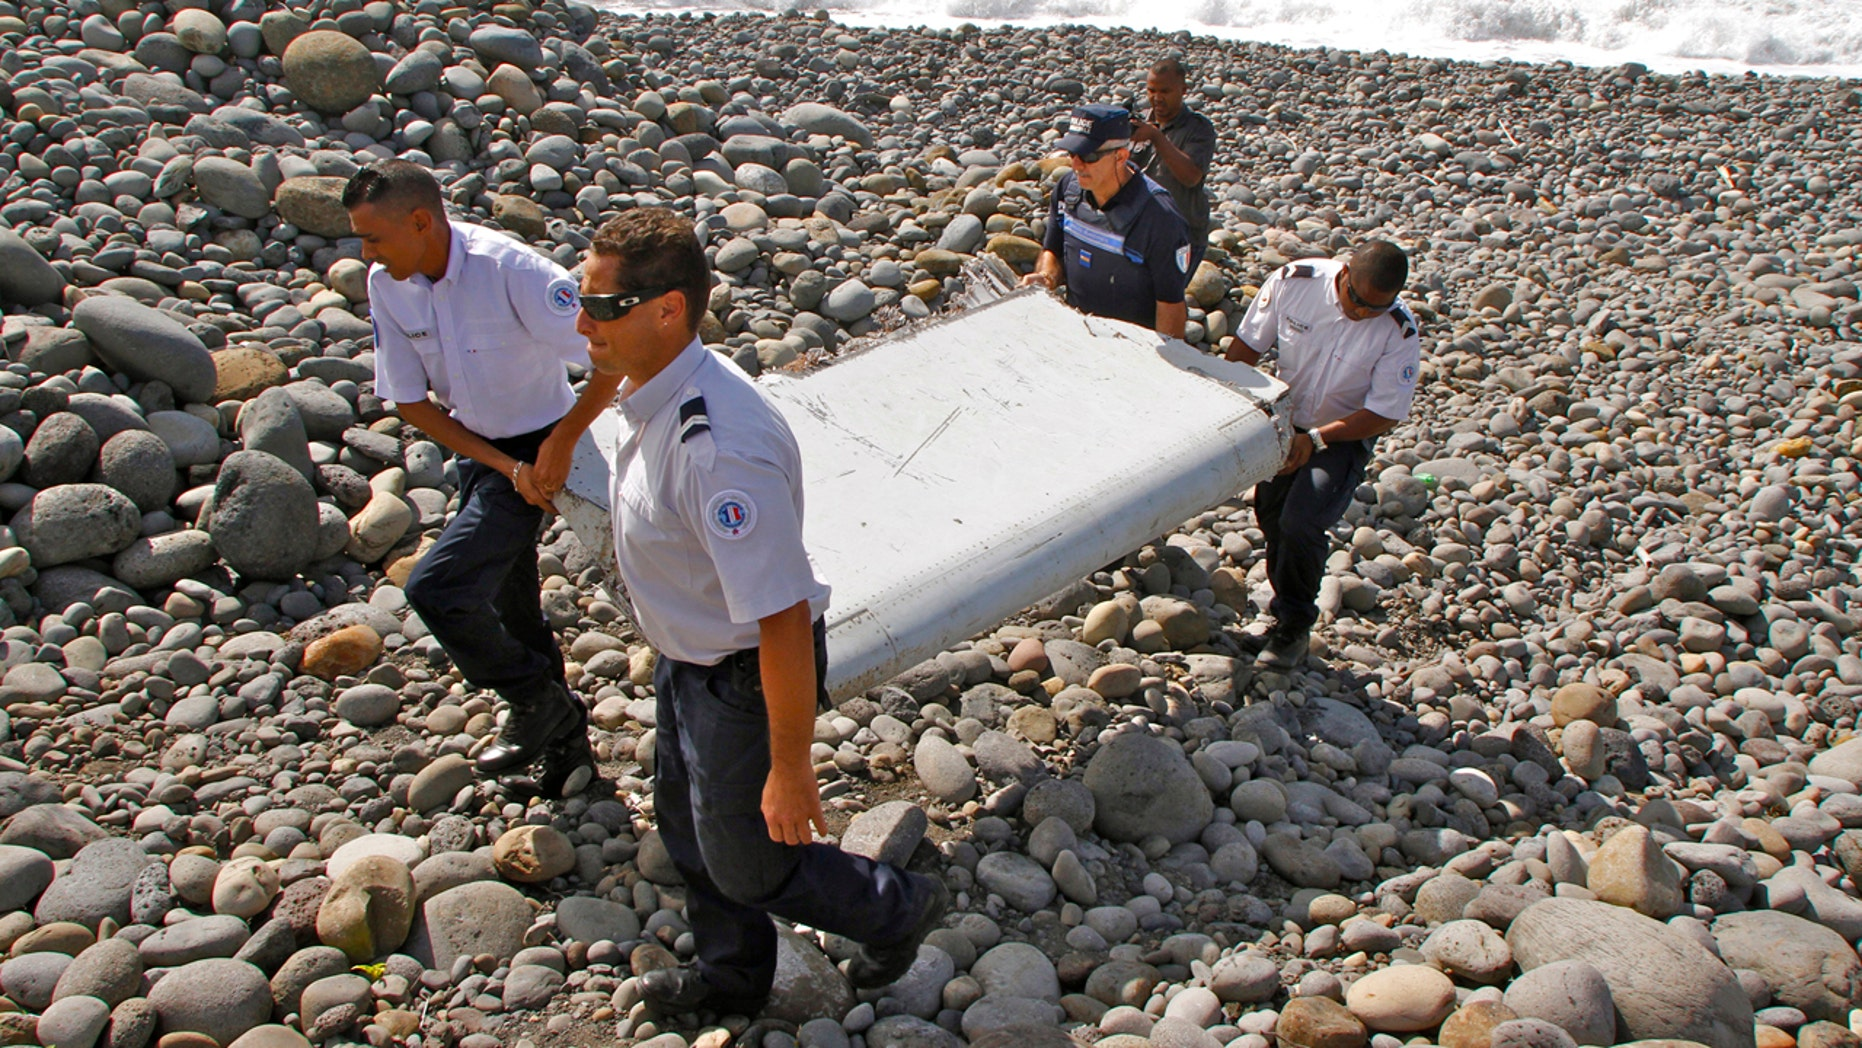 July 29, 2015: French police officers carry a piece of debris from a plane known as a flaperon in Saint-Andre, Reunion Island. The barnacle-encrusted part was the first trace found of Malaysia Airlines Flight 370, which disappeared two years ago.